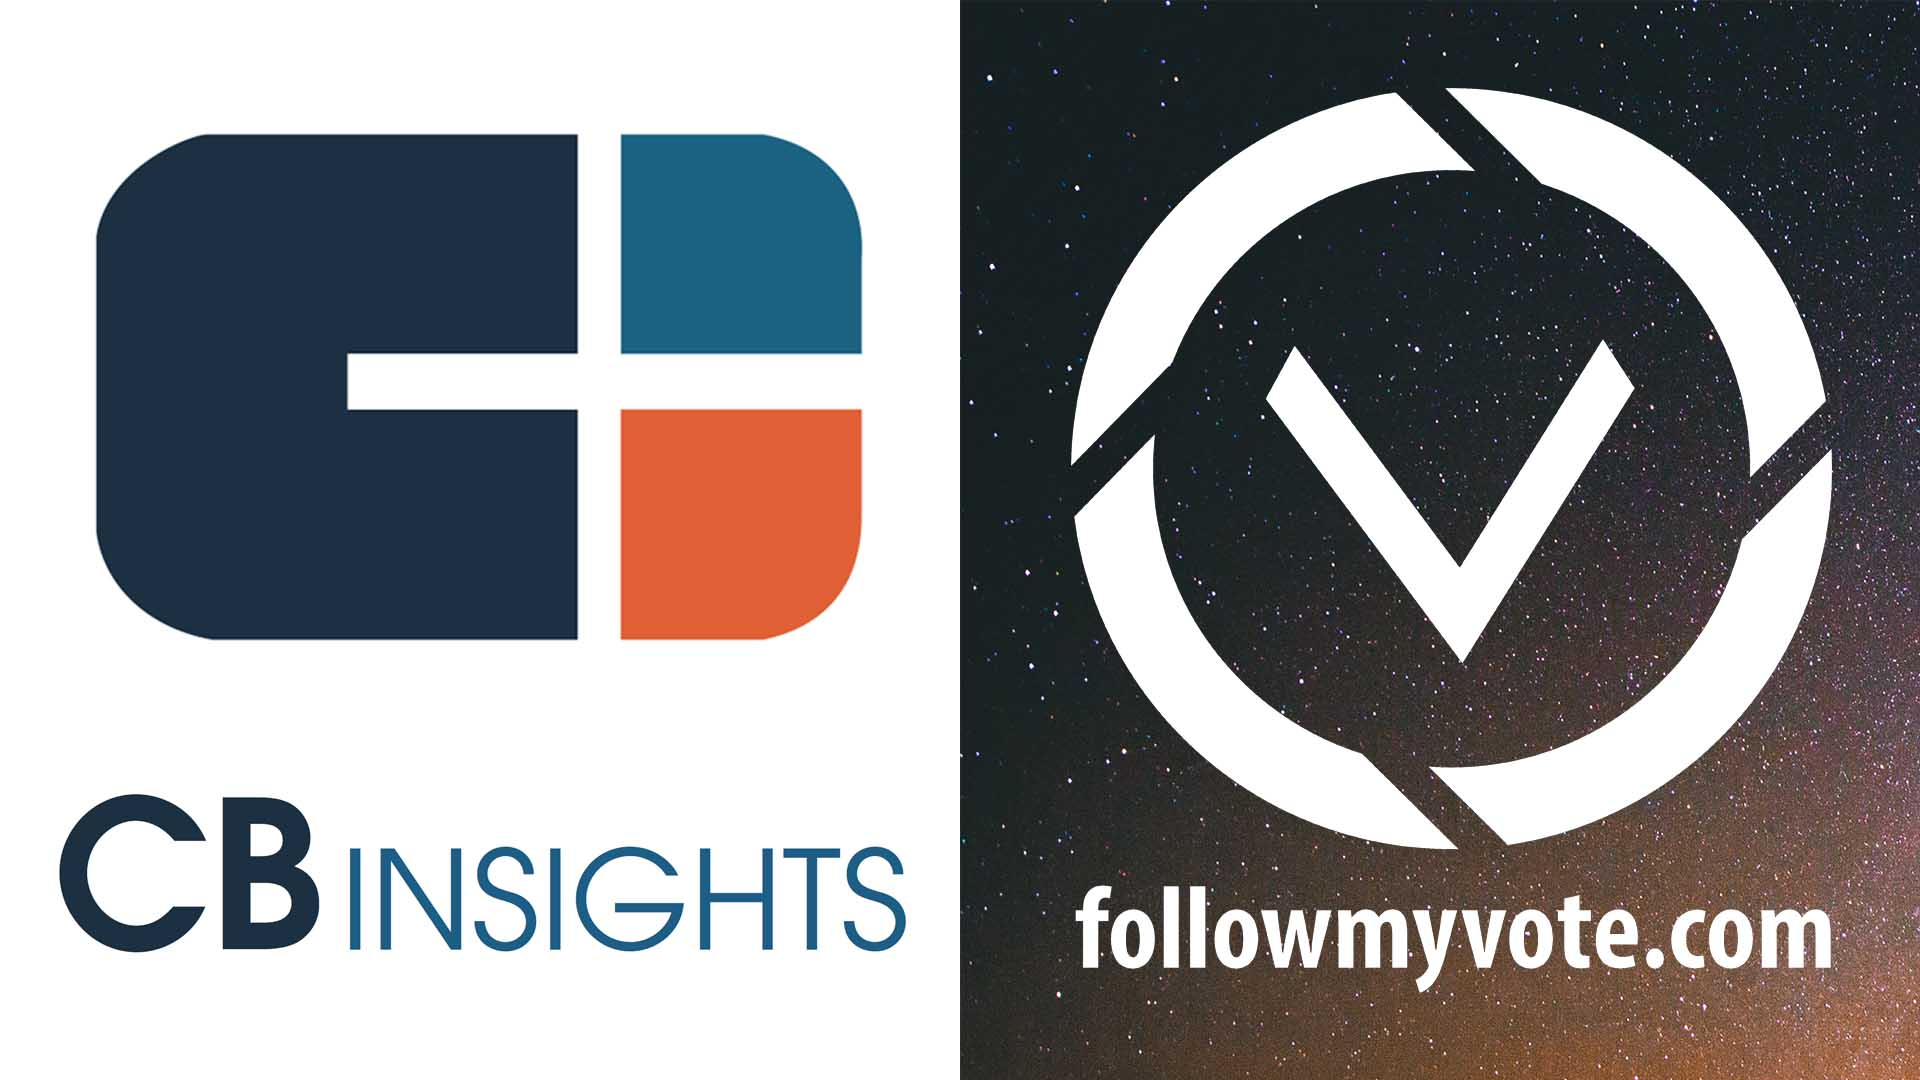 Follow My Vote Named In CB Insights - 30 Big Industries Blockchain Could Transform